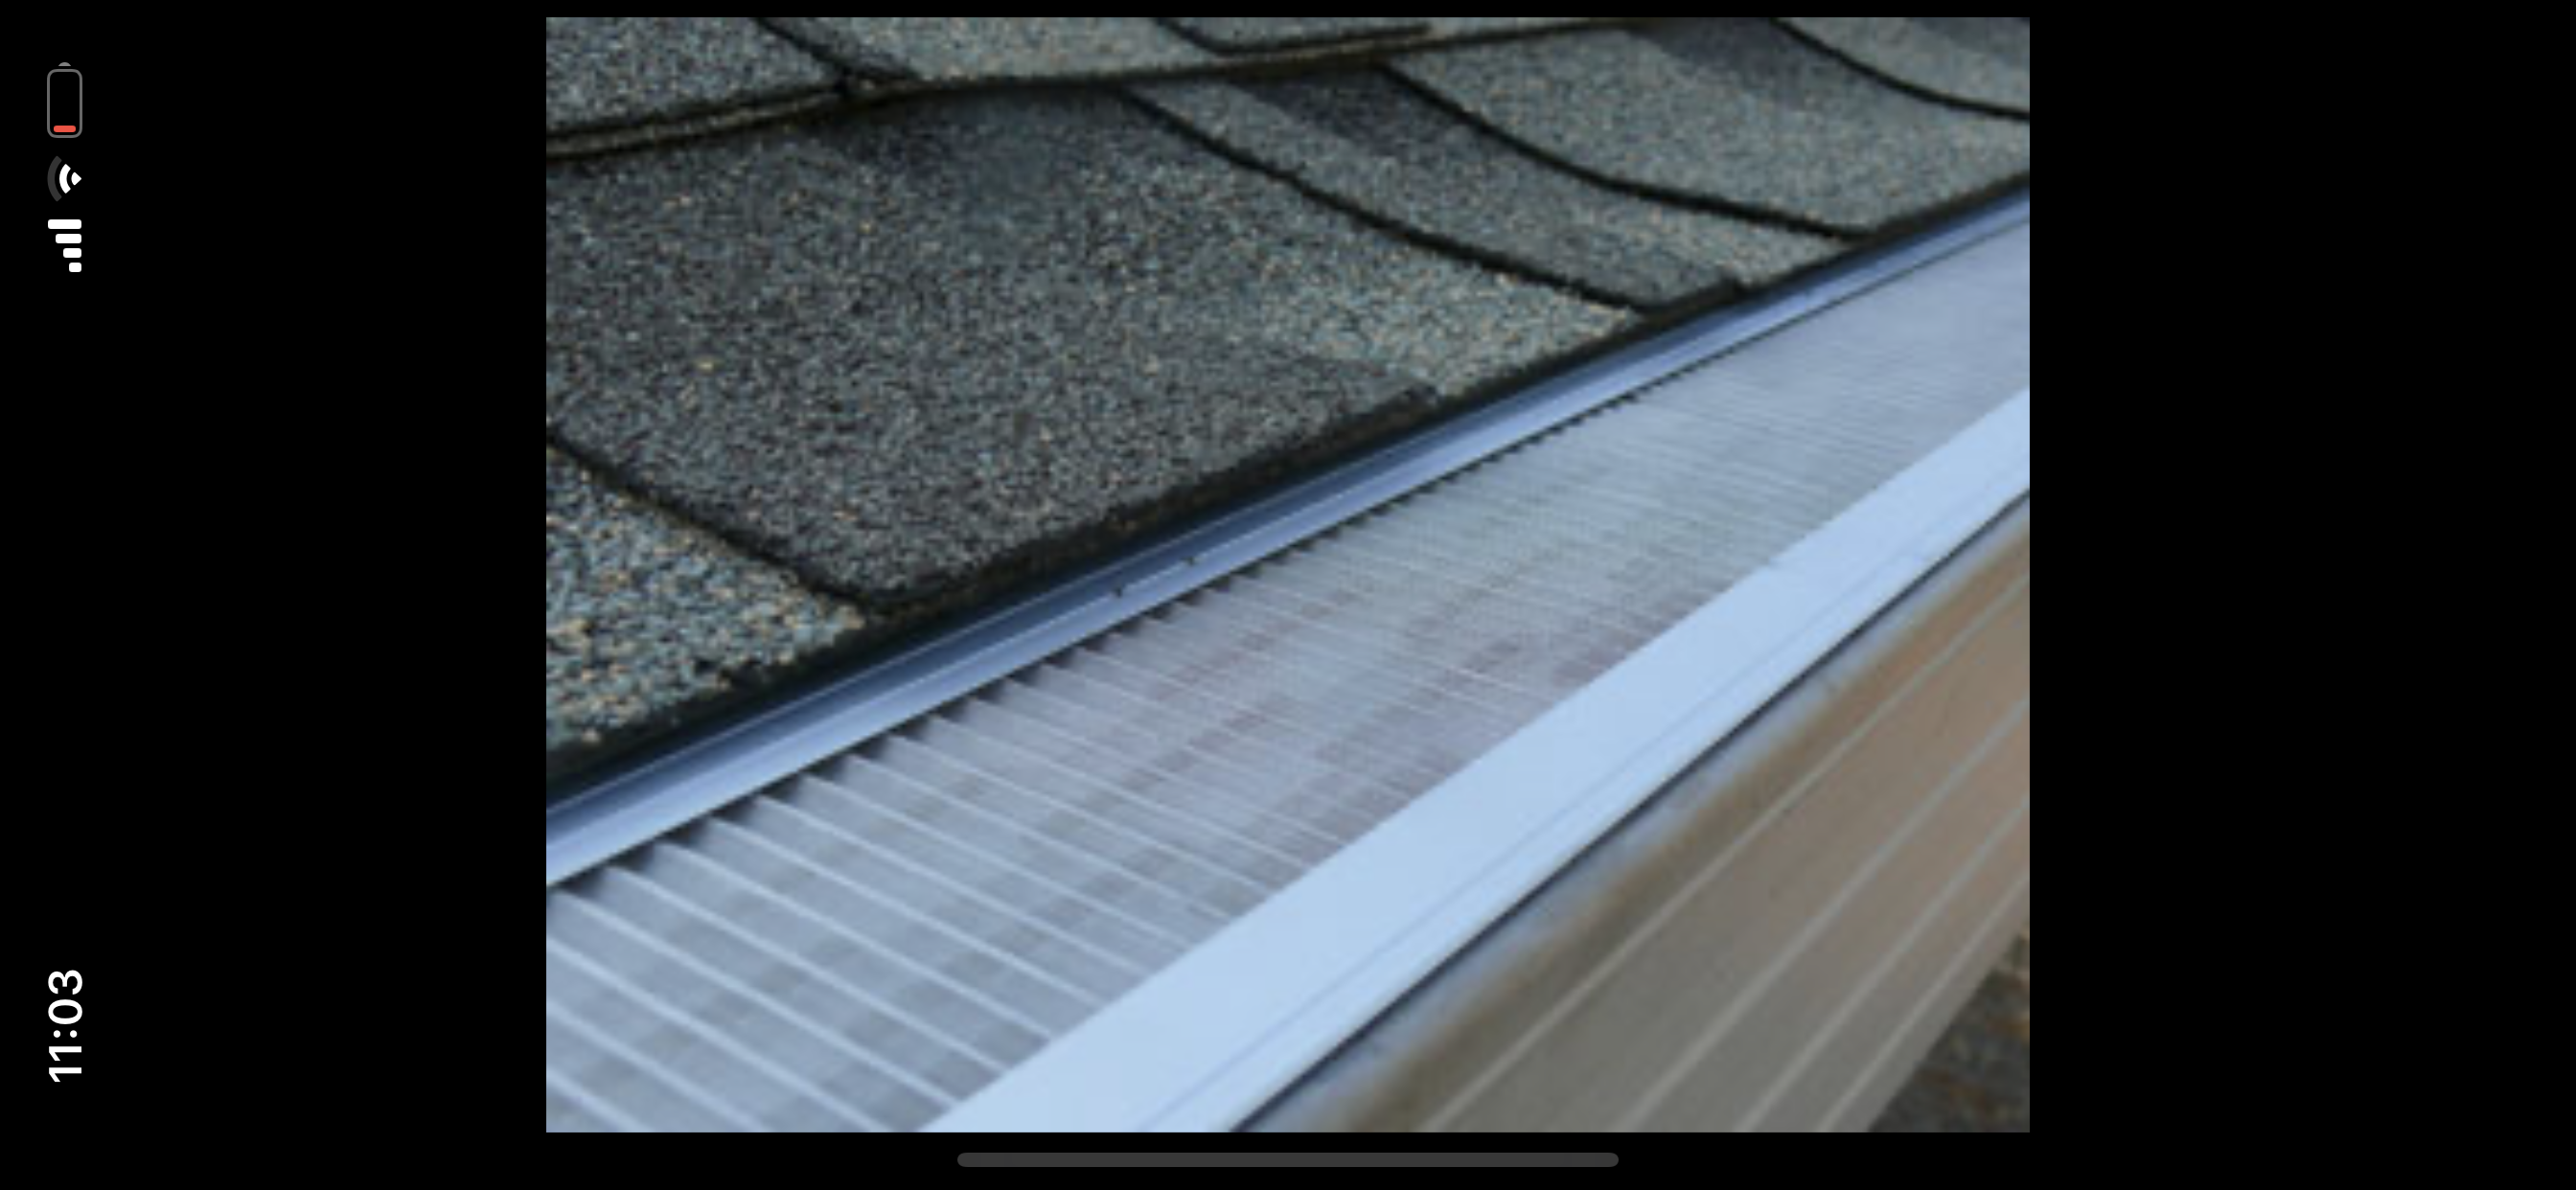 this is a picture of gutter glove stainless steel gutter guard products